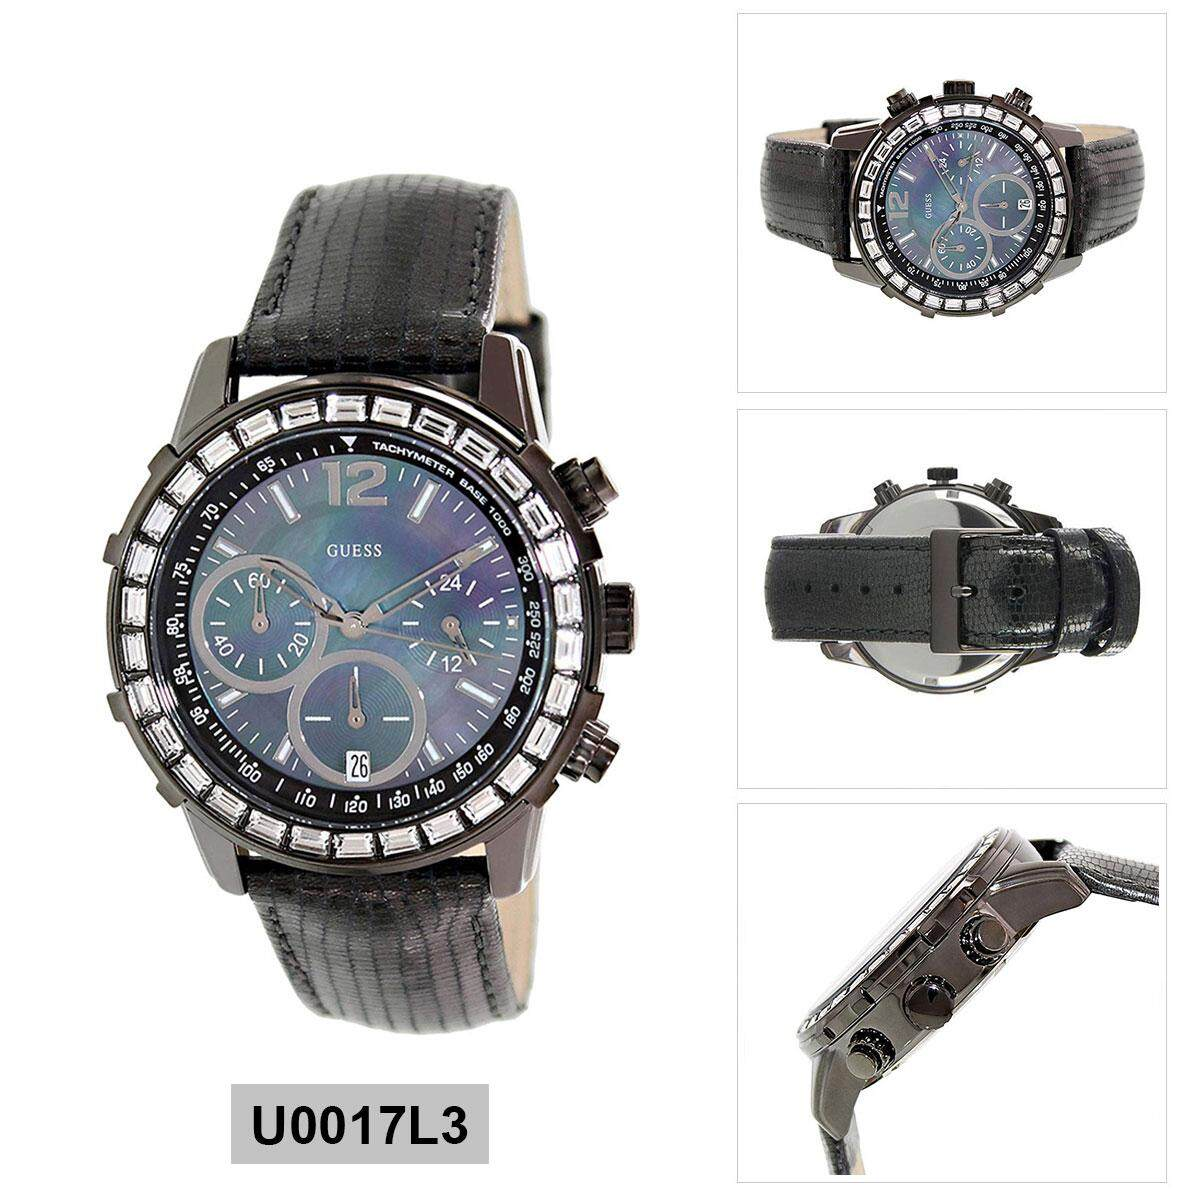 Guess Watches Price In Malaysia Best Lazada Jam Tangan Couple Swiss Navy Sn5860 Rosegold Stainless Steel Quartz Black Case Leather Strap Ladies U0017l3